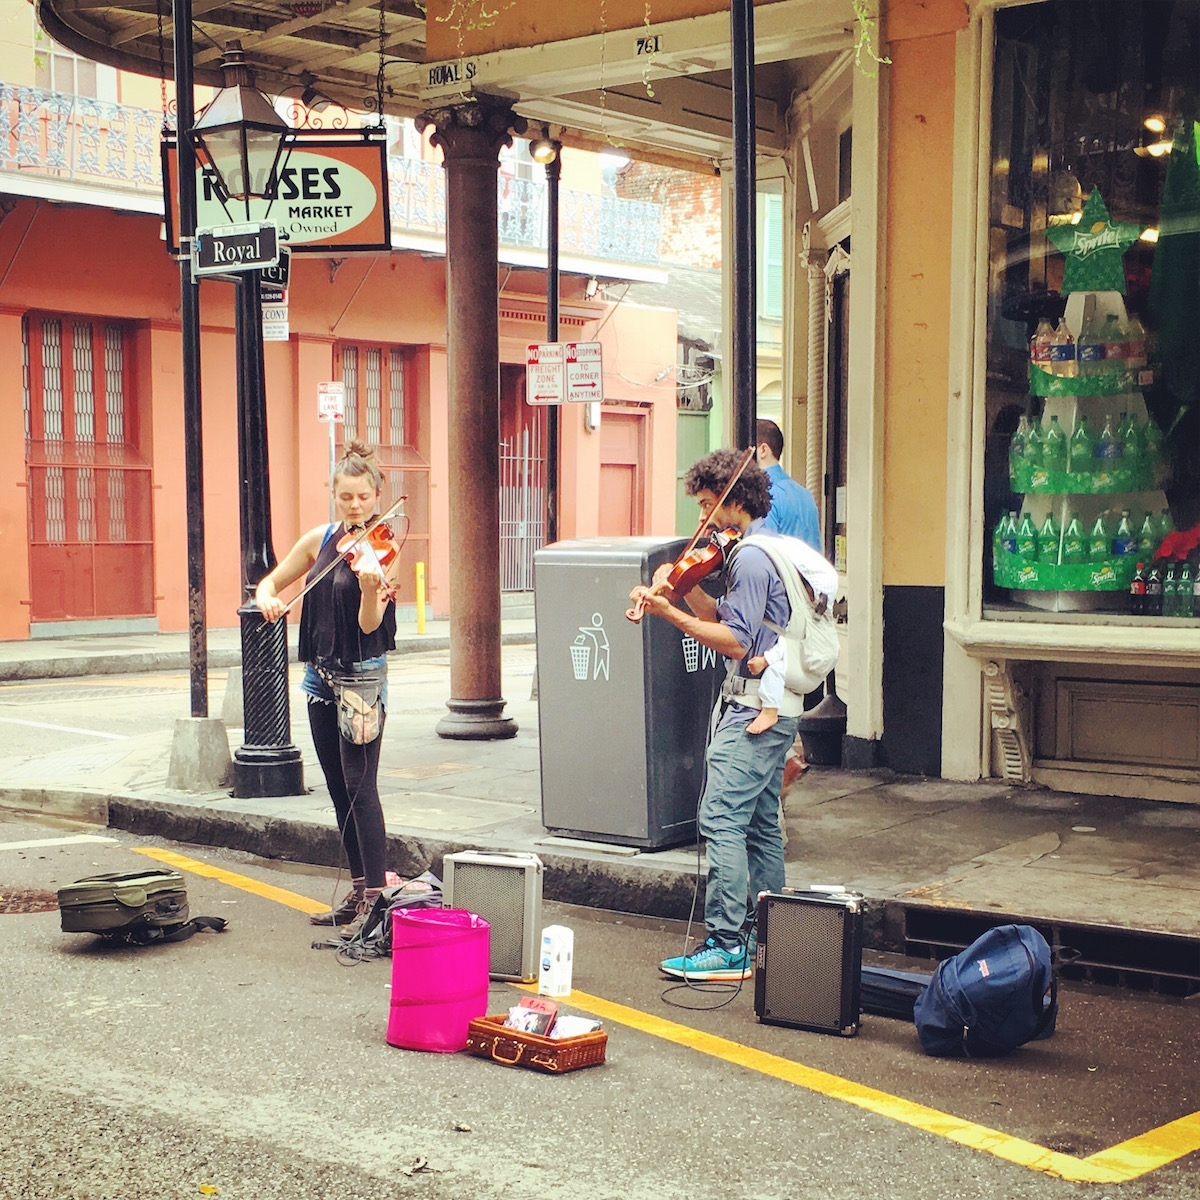 Street Music in New Orleans - 7